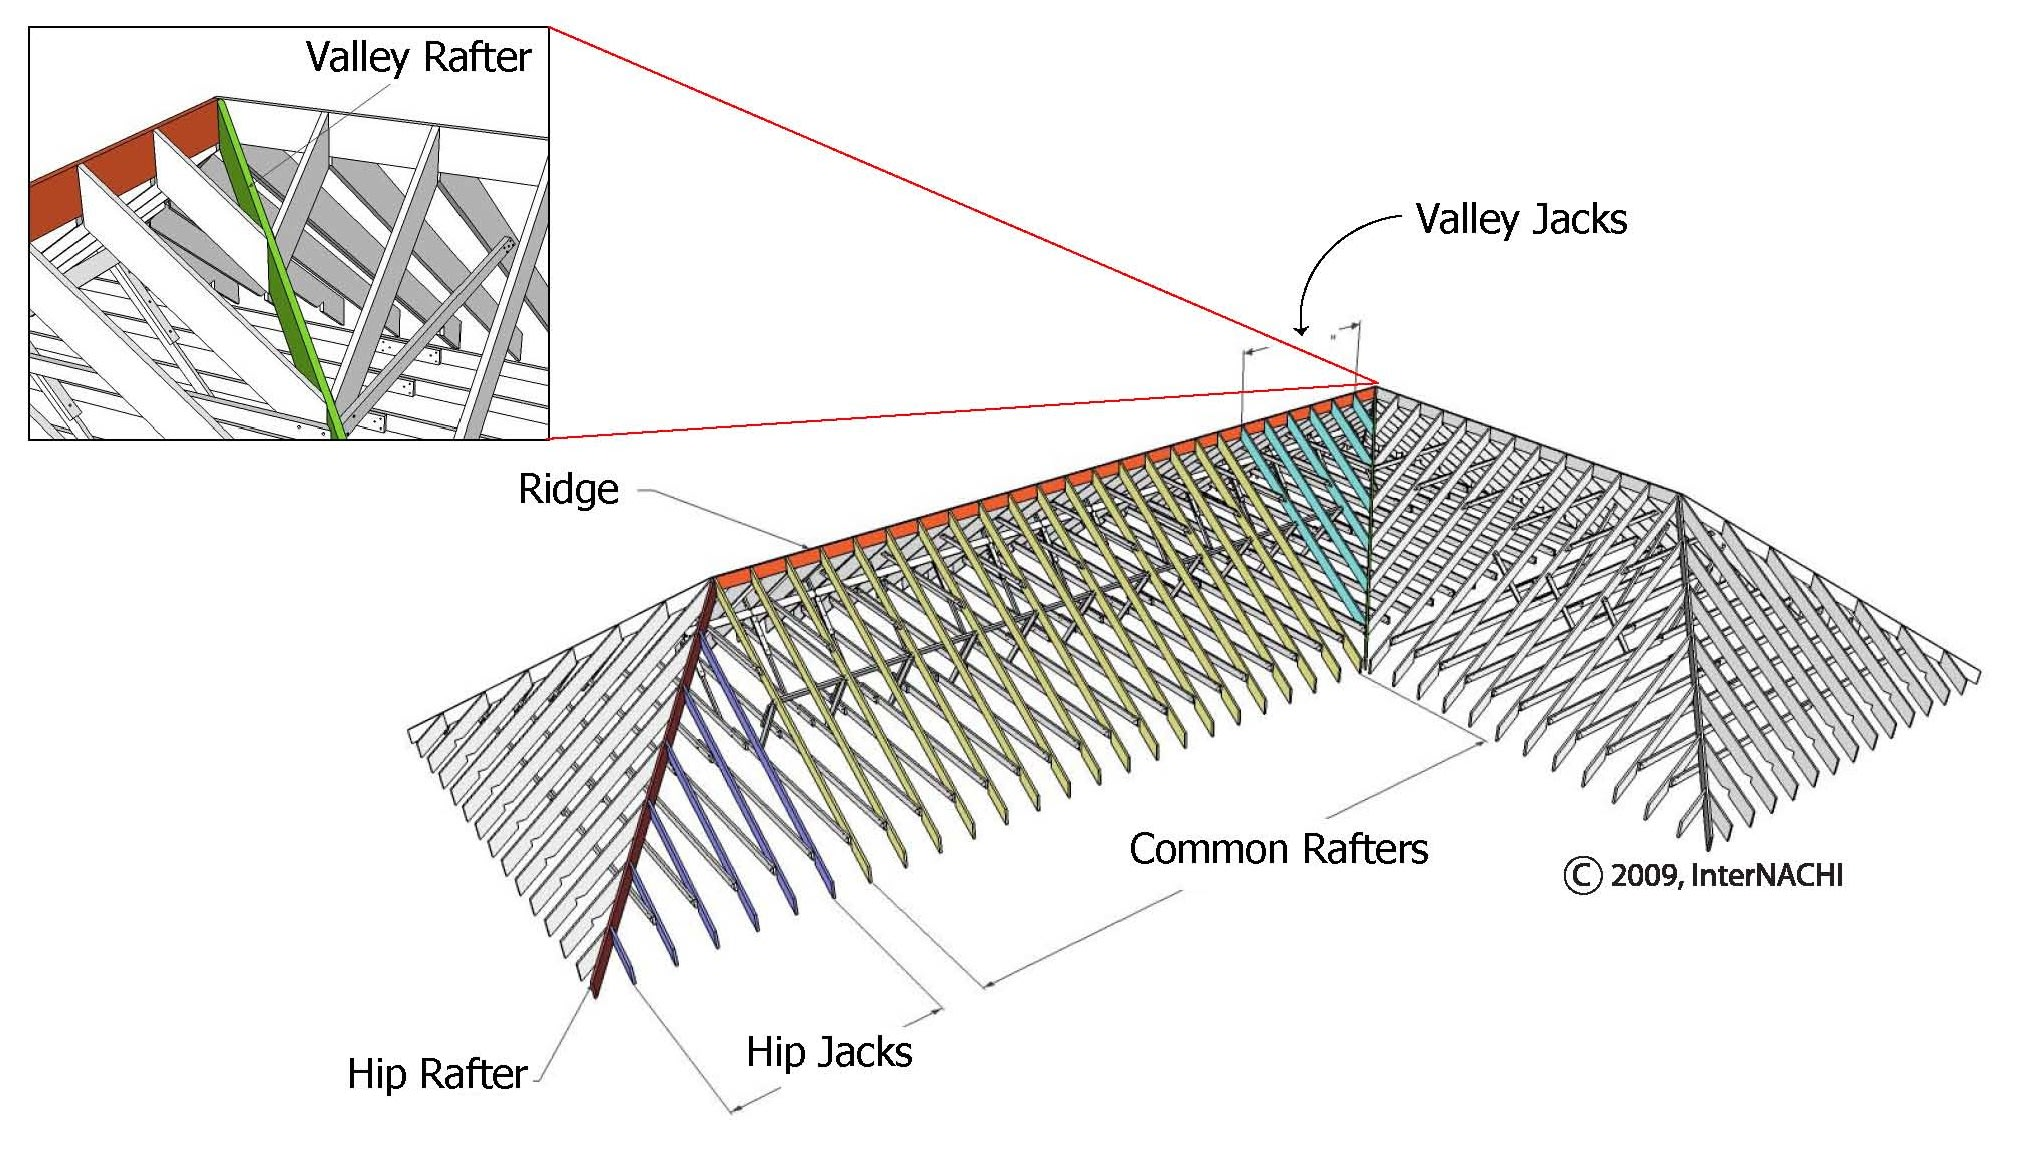 Valley rafter.